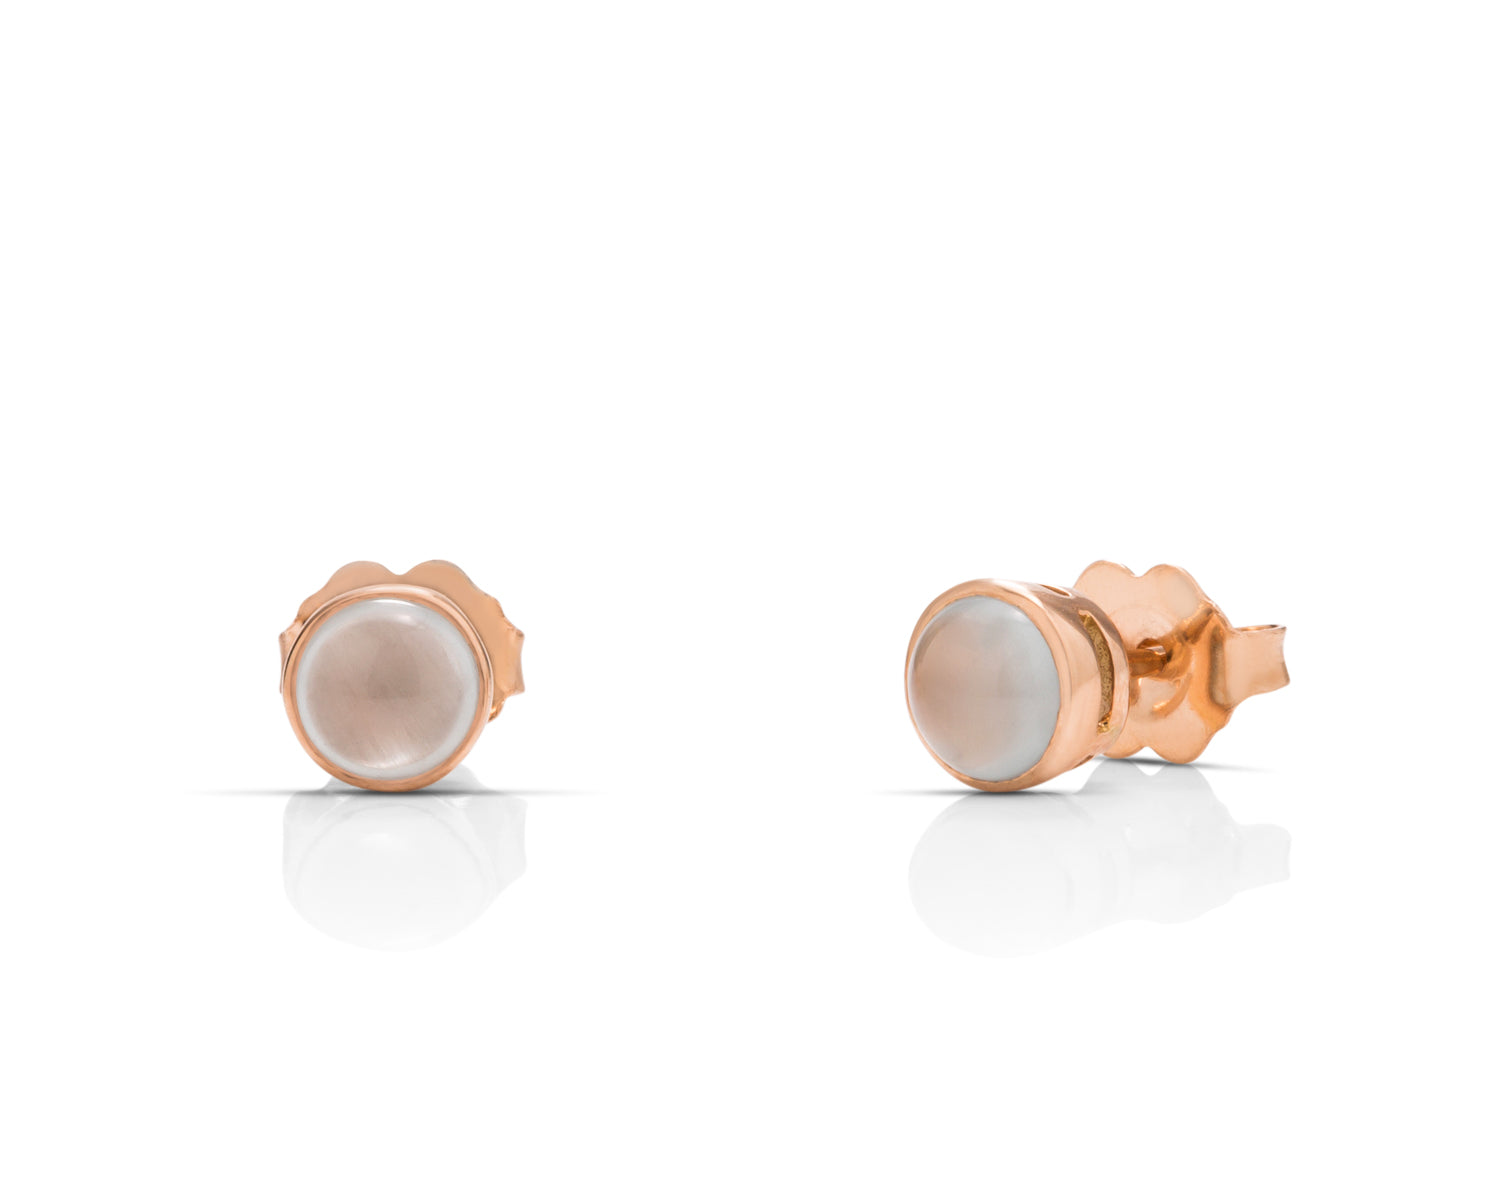 Aquamarine 18k Rose Gold Stud Earrings - Charles Koll Jewellers